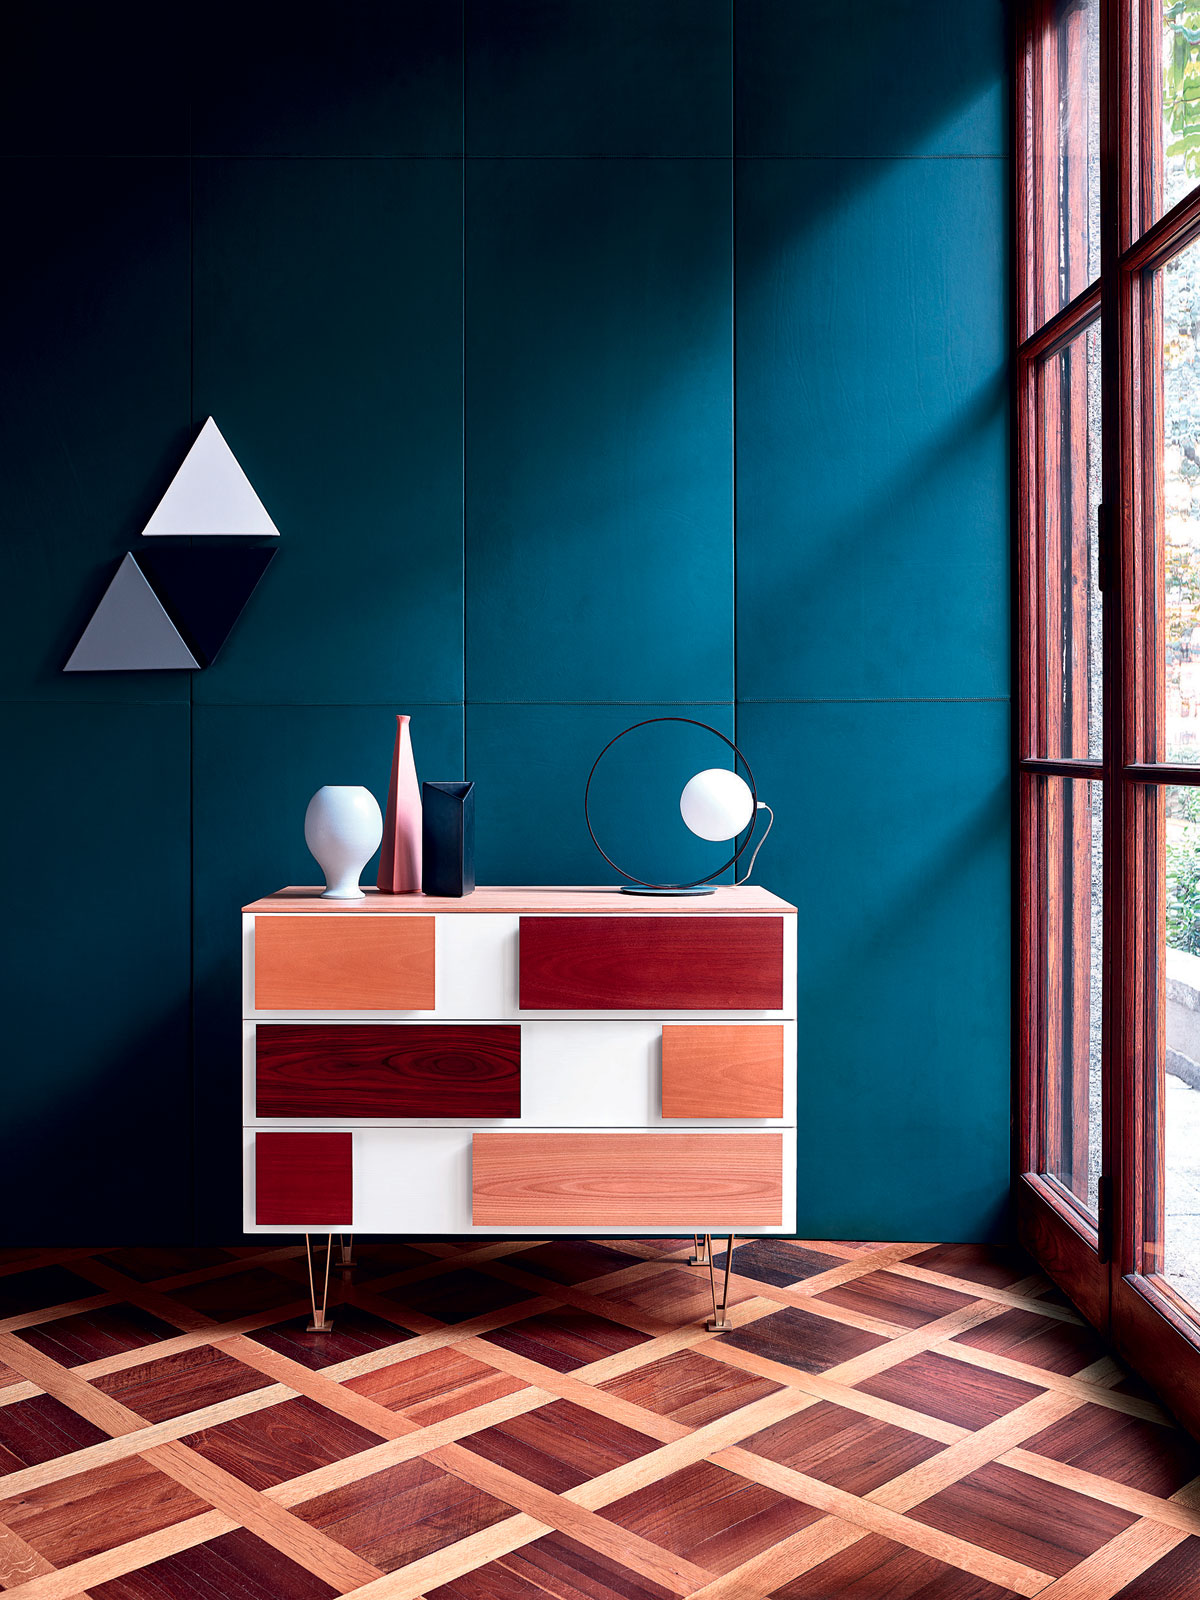 Design Galleries Not To Be Missed In Paris - Gio Ponti 5 - www.AuthenticInterior.com DESIGN BLOG